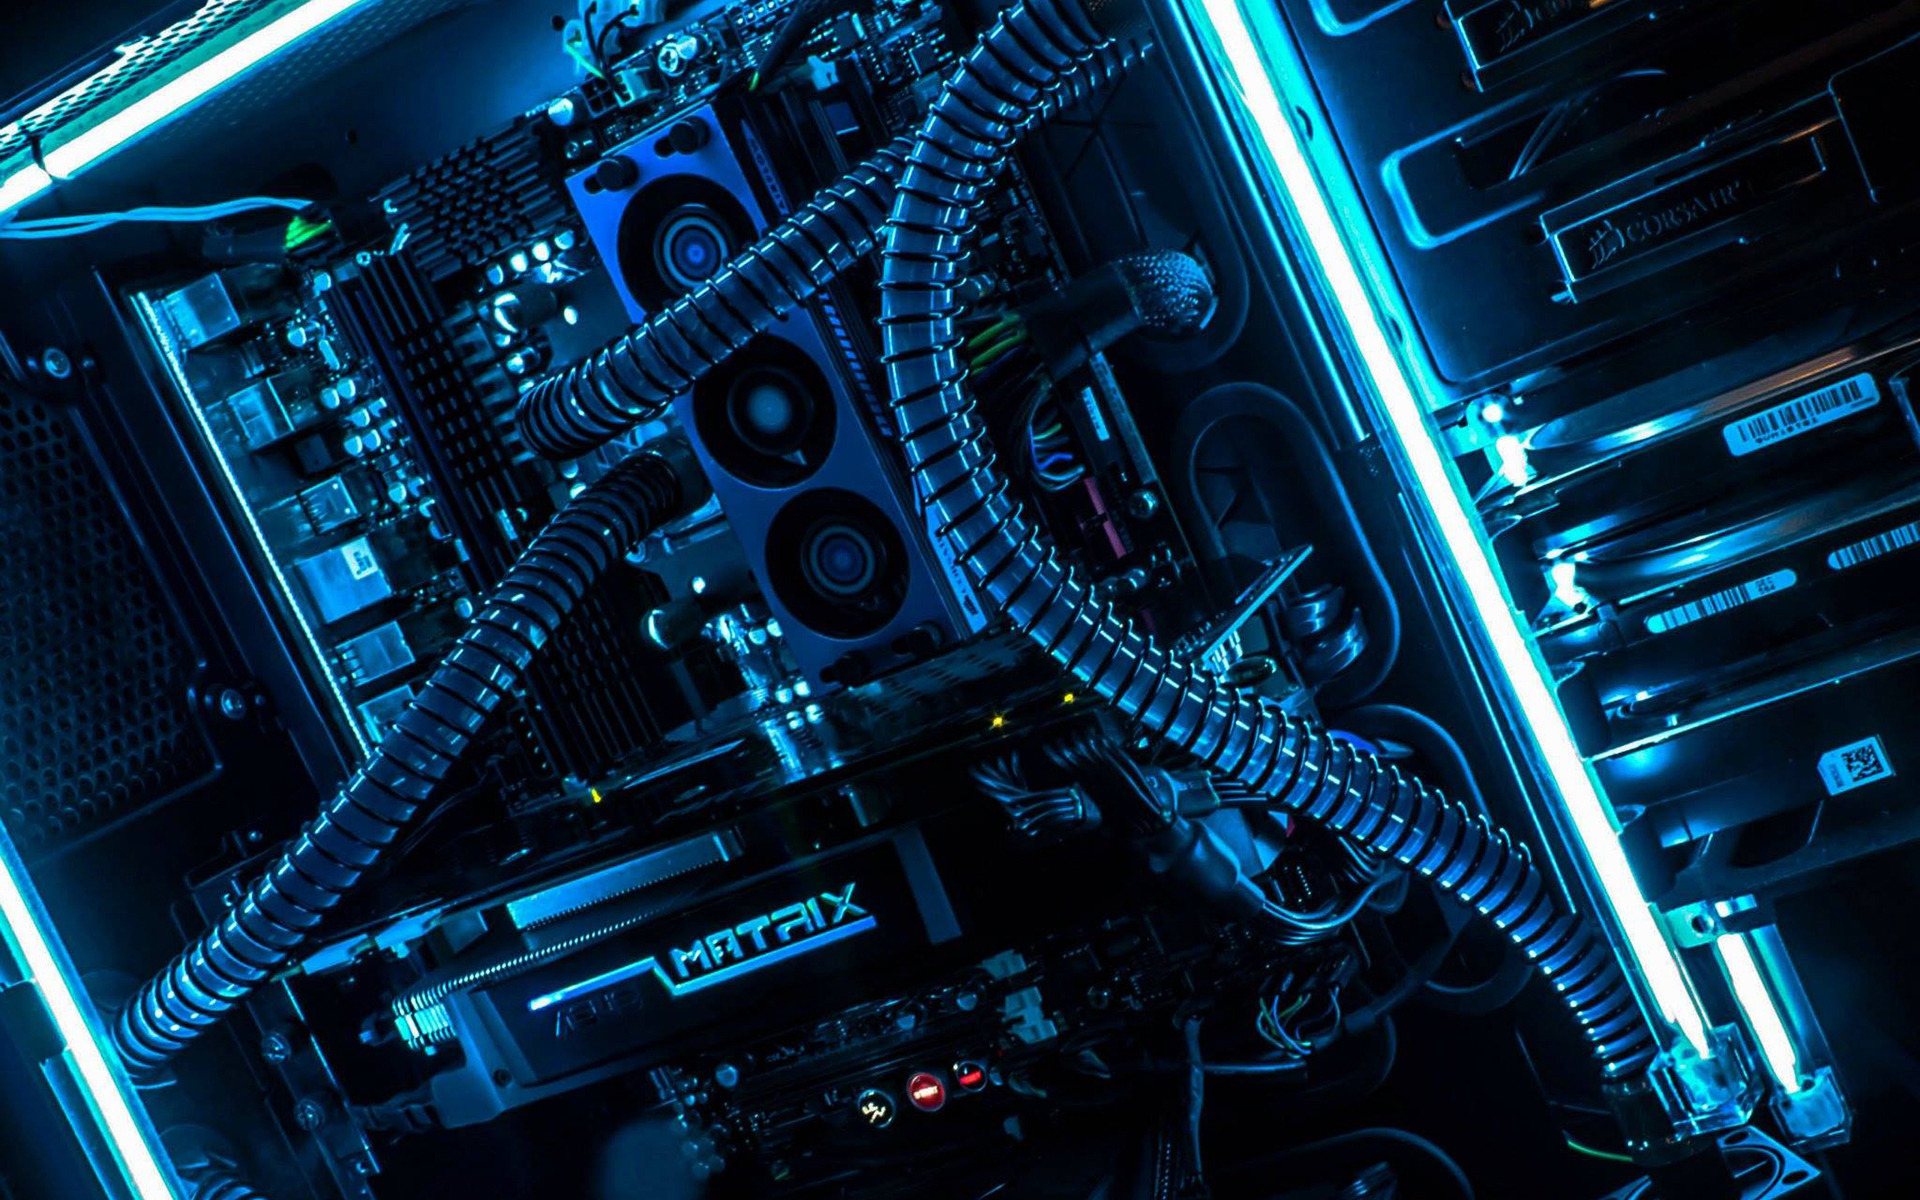 Gaming Pc Wallpaper Wallpapersafari